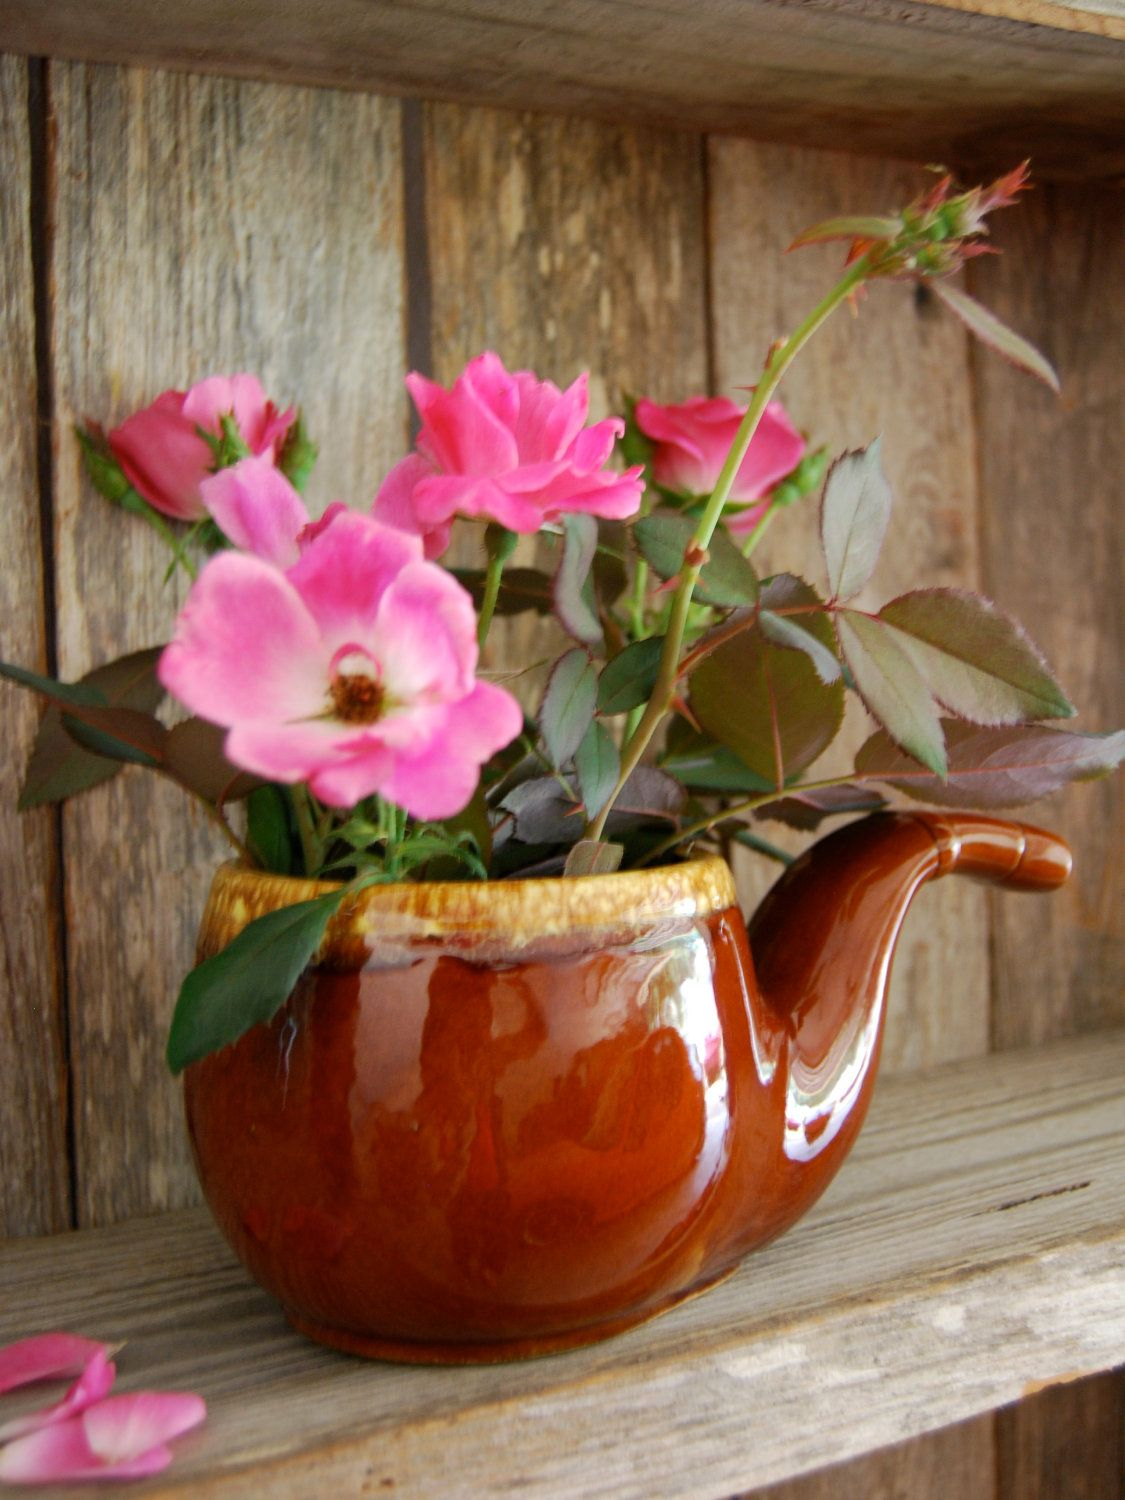 Vintage Brown Ceramic Stoneware Pipe Planter | Pinterest | Stoneware on hull stoneware, hull lights, hull brown drip rare pieces, hull plates, hull candle holders, hull flower pots,